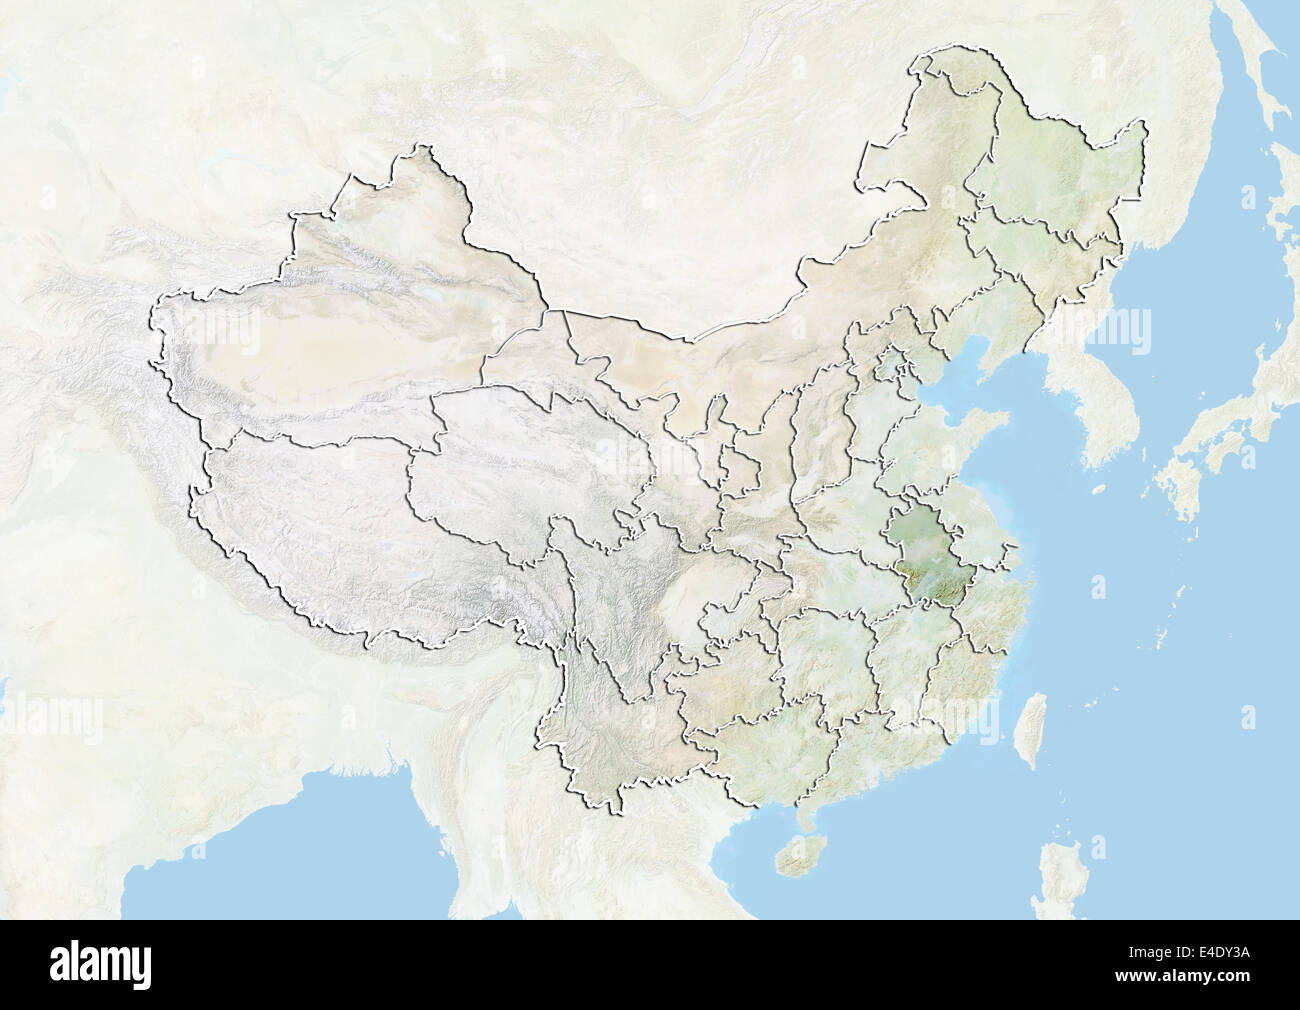 China And The Province Of Anhui Relief Map Stock Photo 71606734